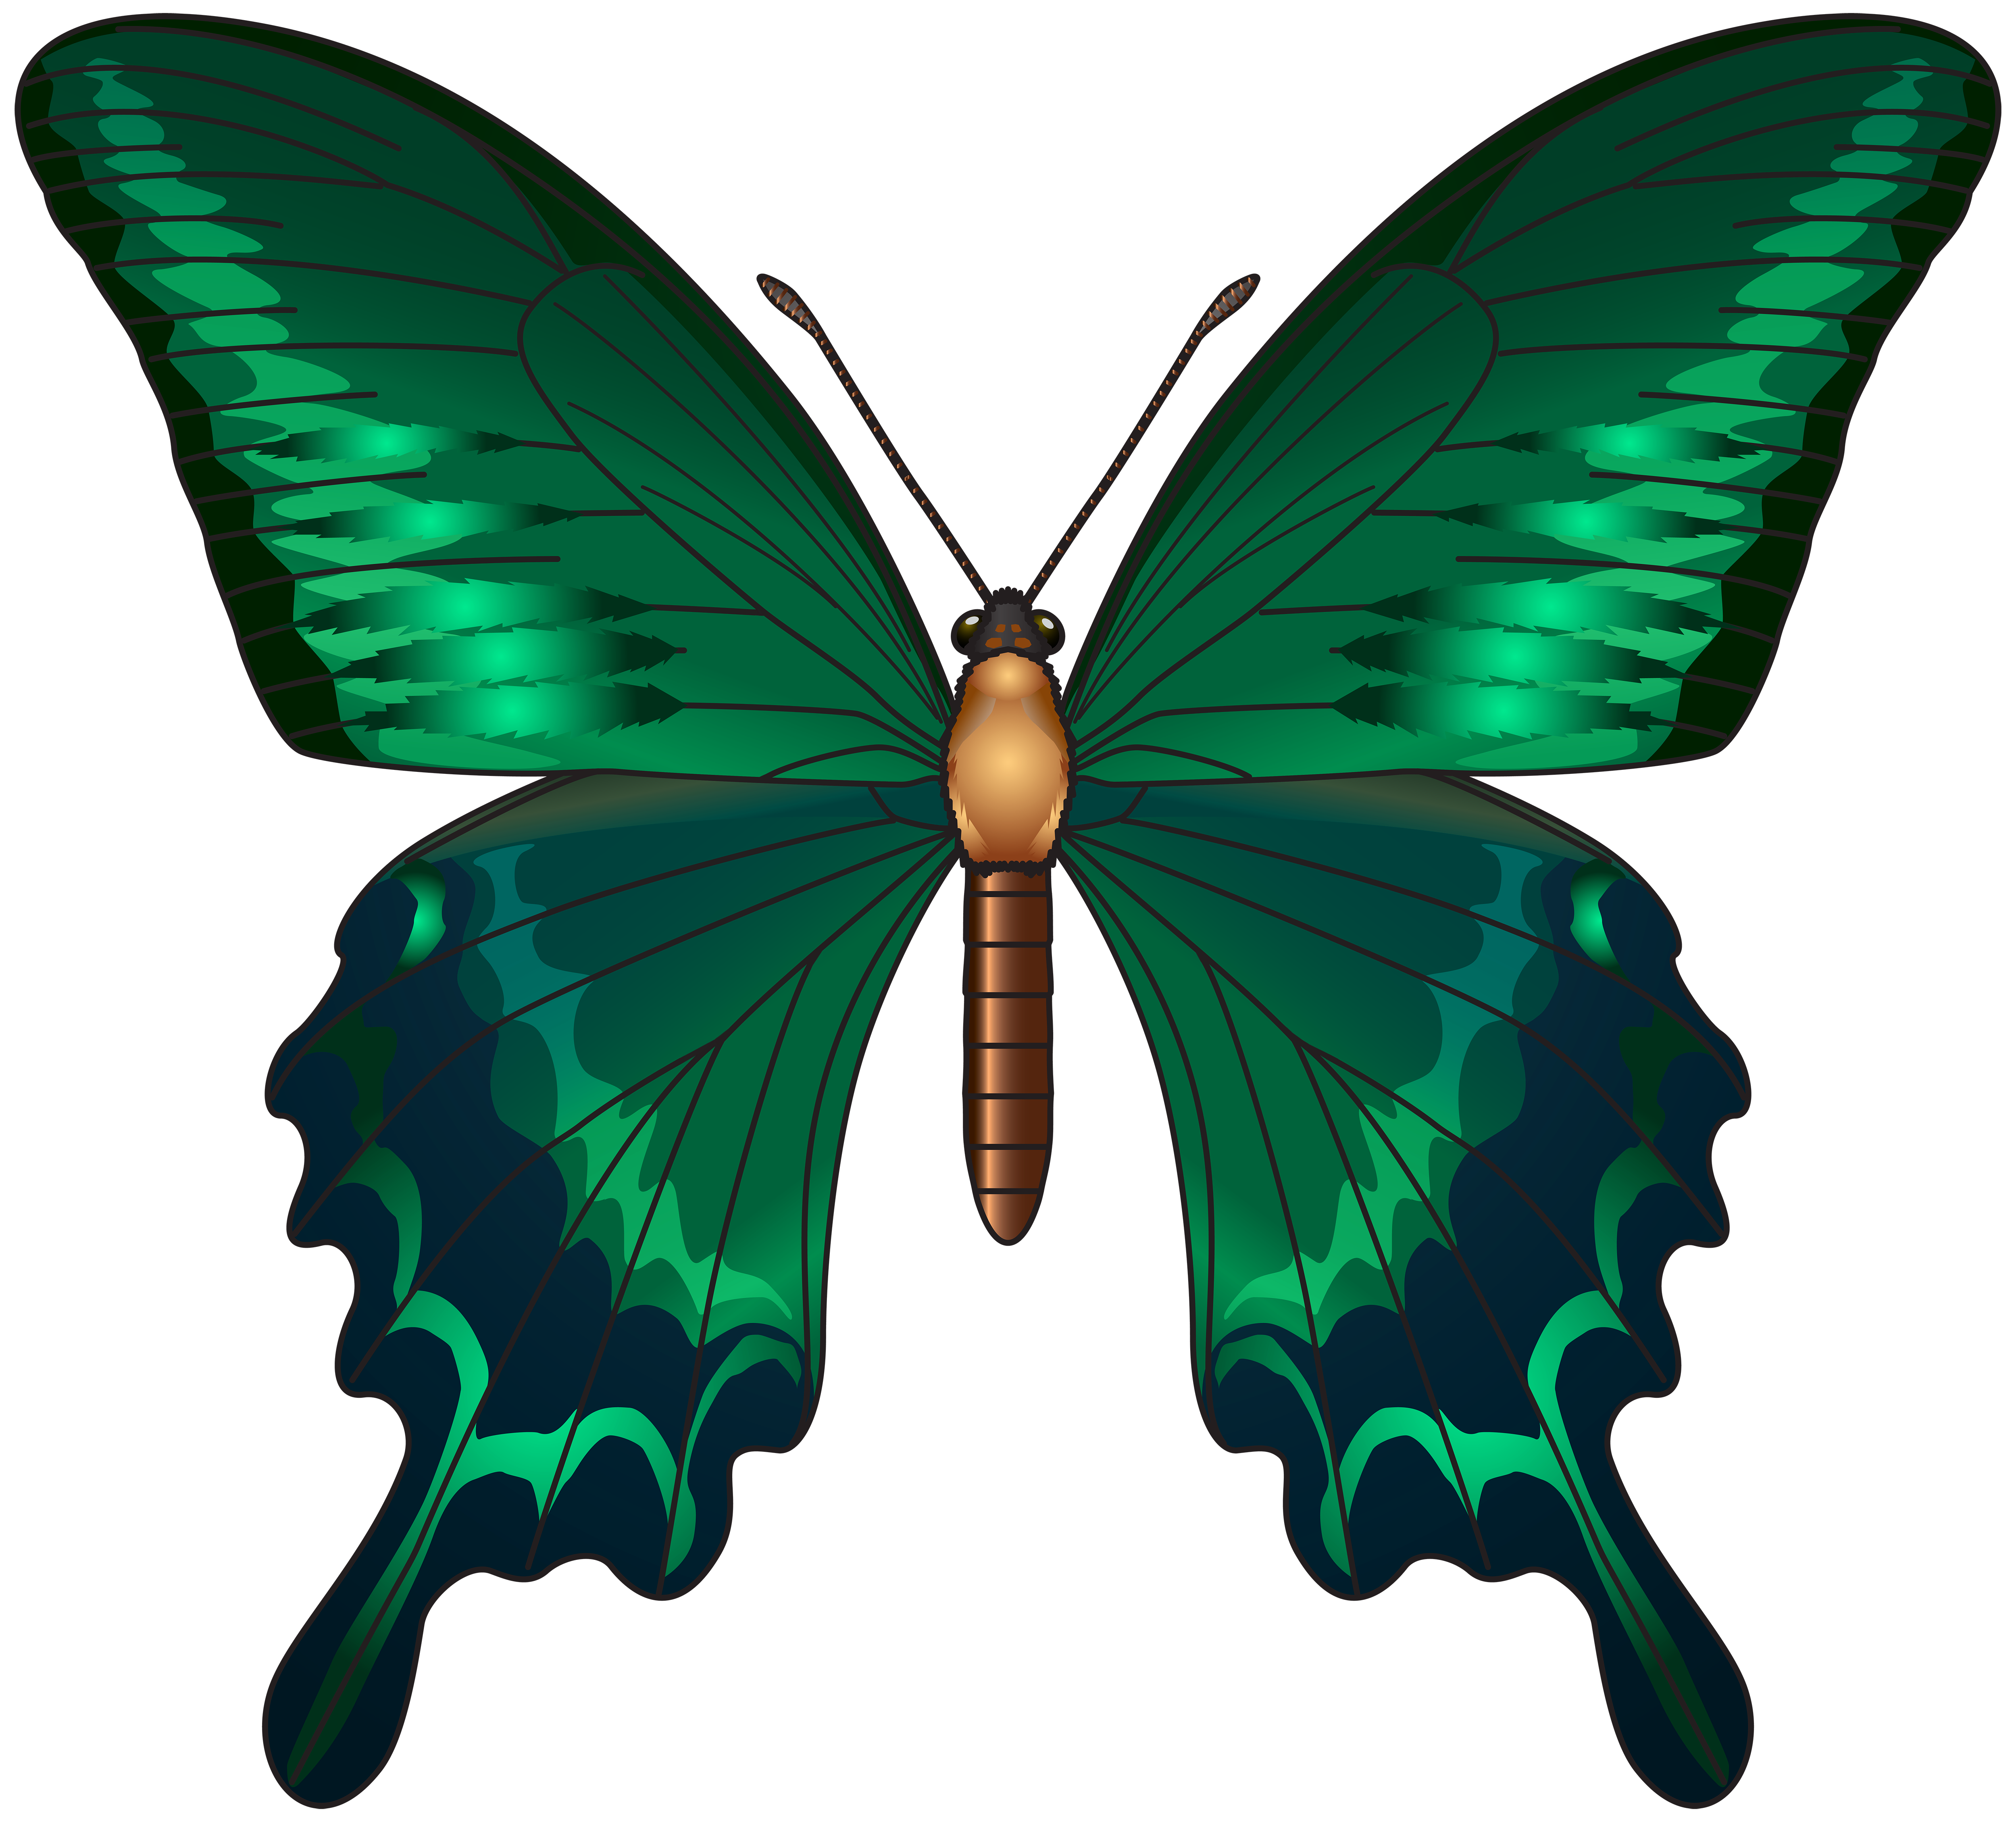 Green Butterfly Png Clip Art Image Gallery Yopriceville High Quality Images And Transparent Pn Butterfly Art Painting Green Butterfly Butterfly Garden Art